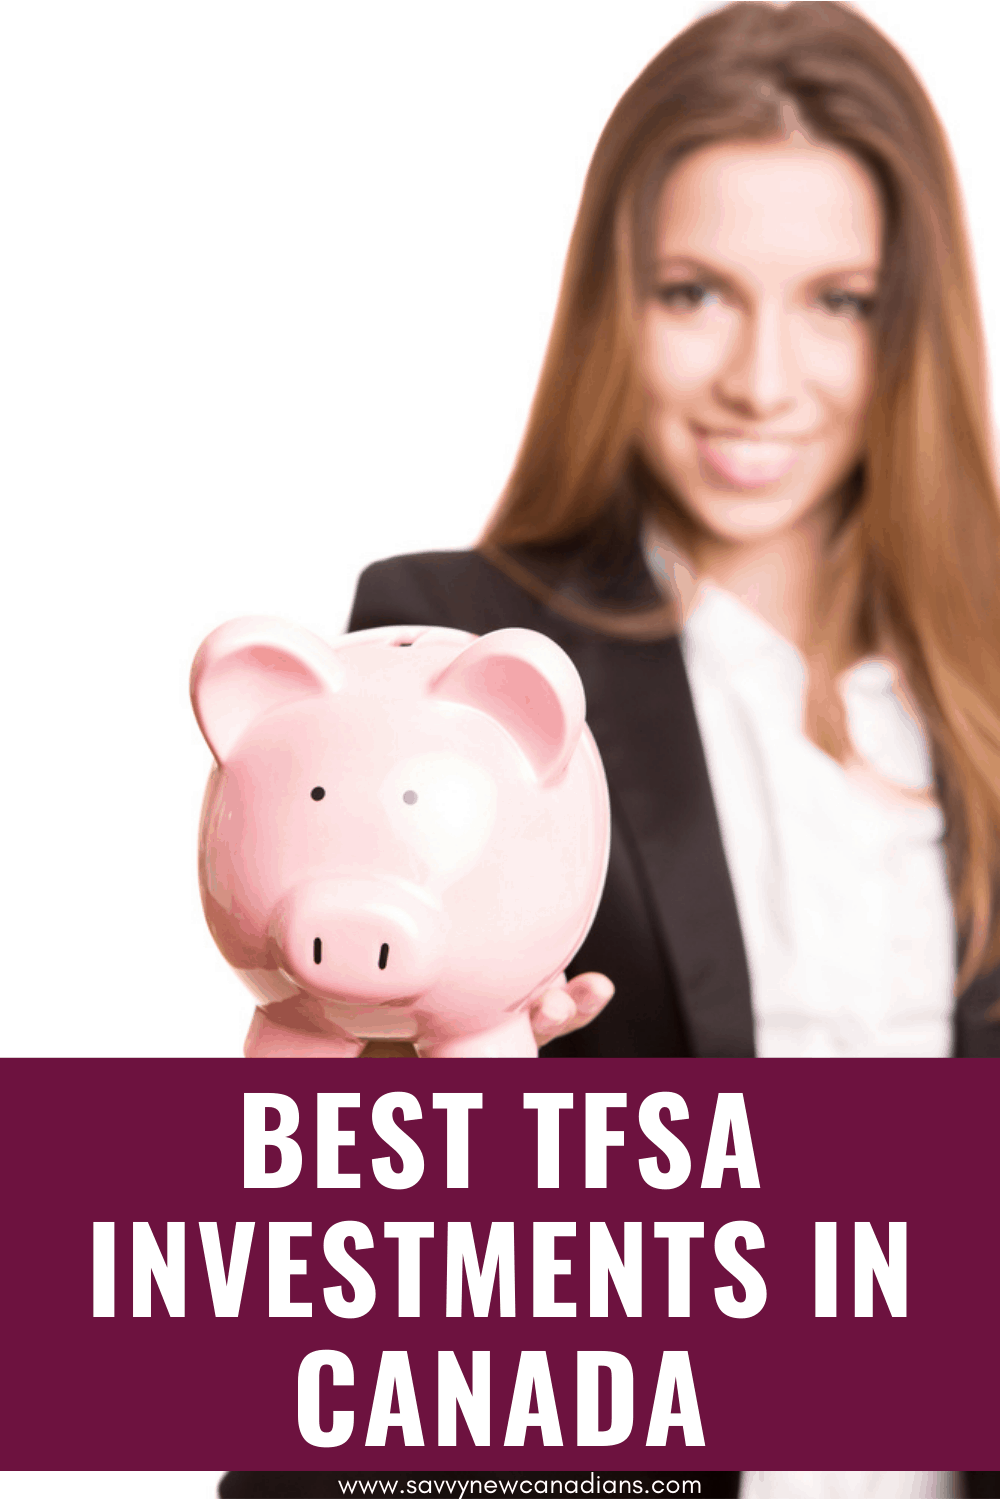 5 Ways to Invest In Your TFSA in 2021